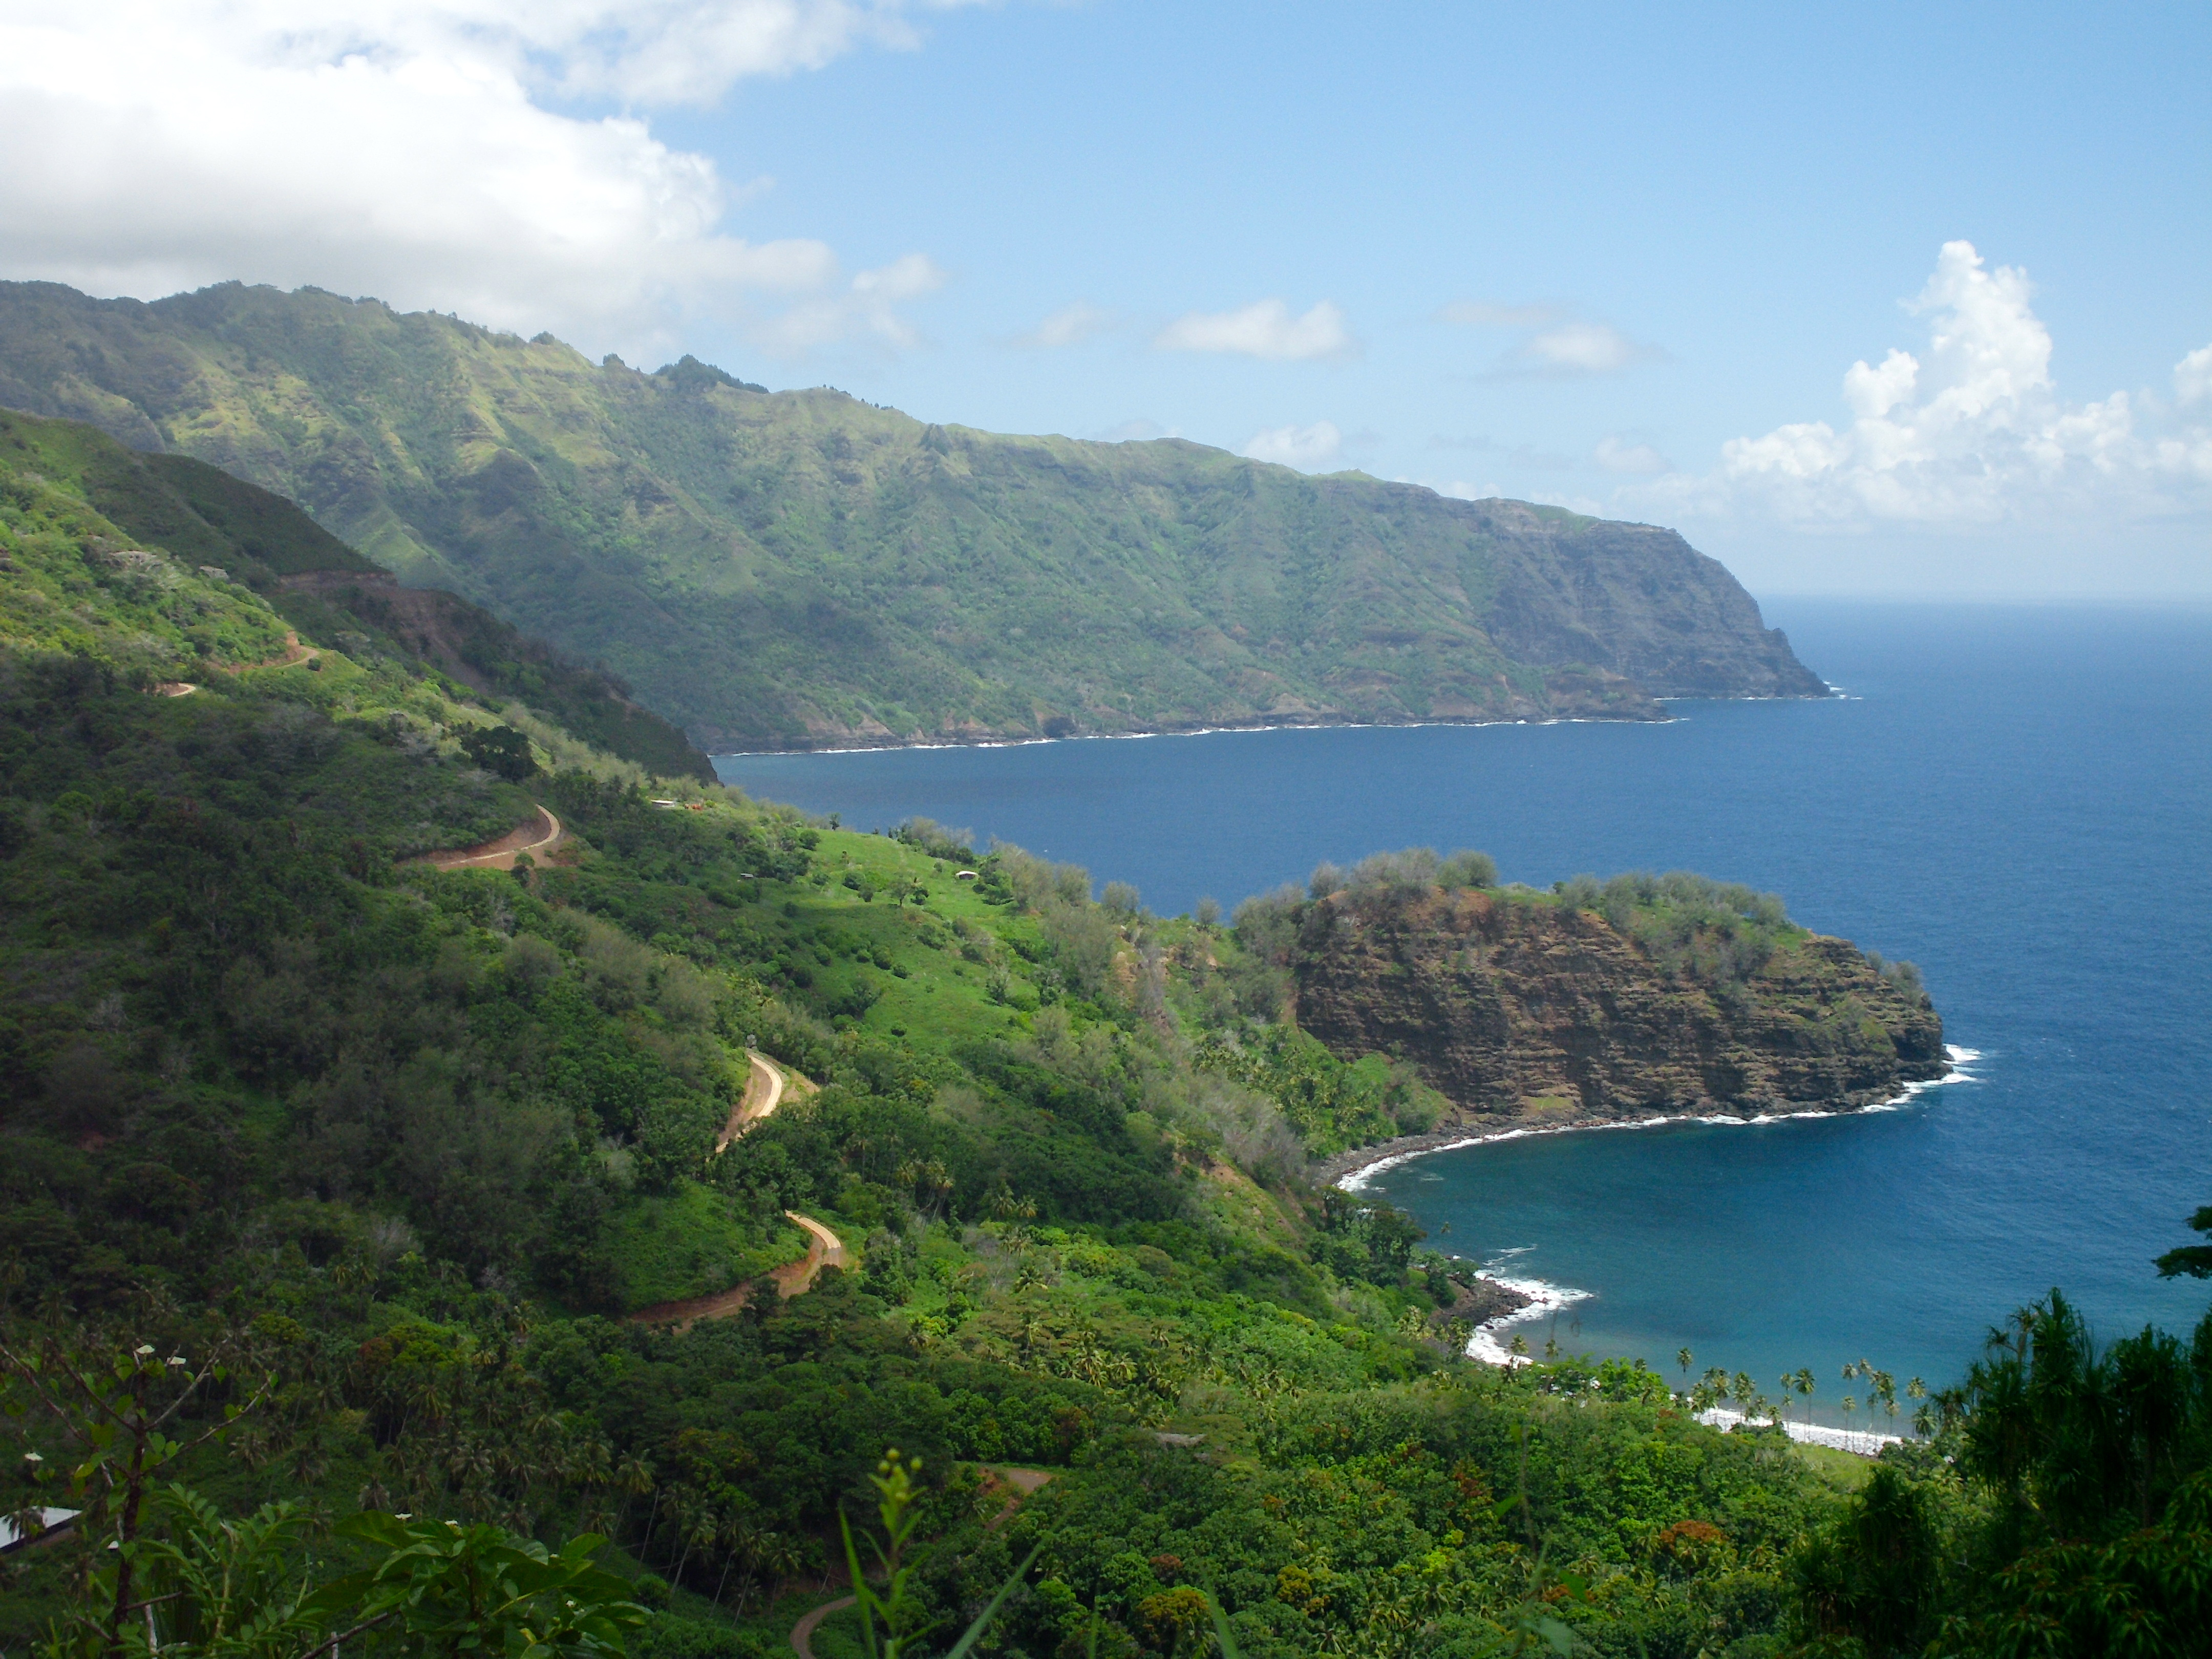 The Marquesas Islands